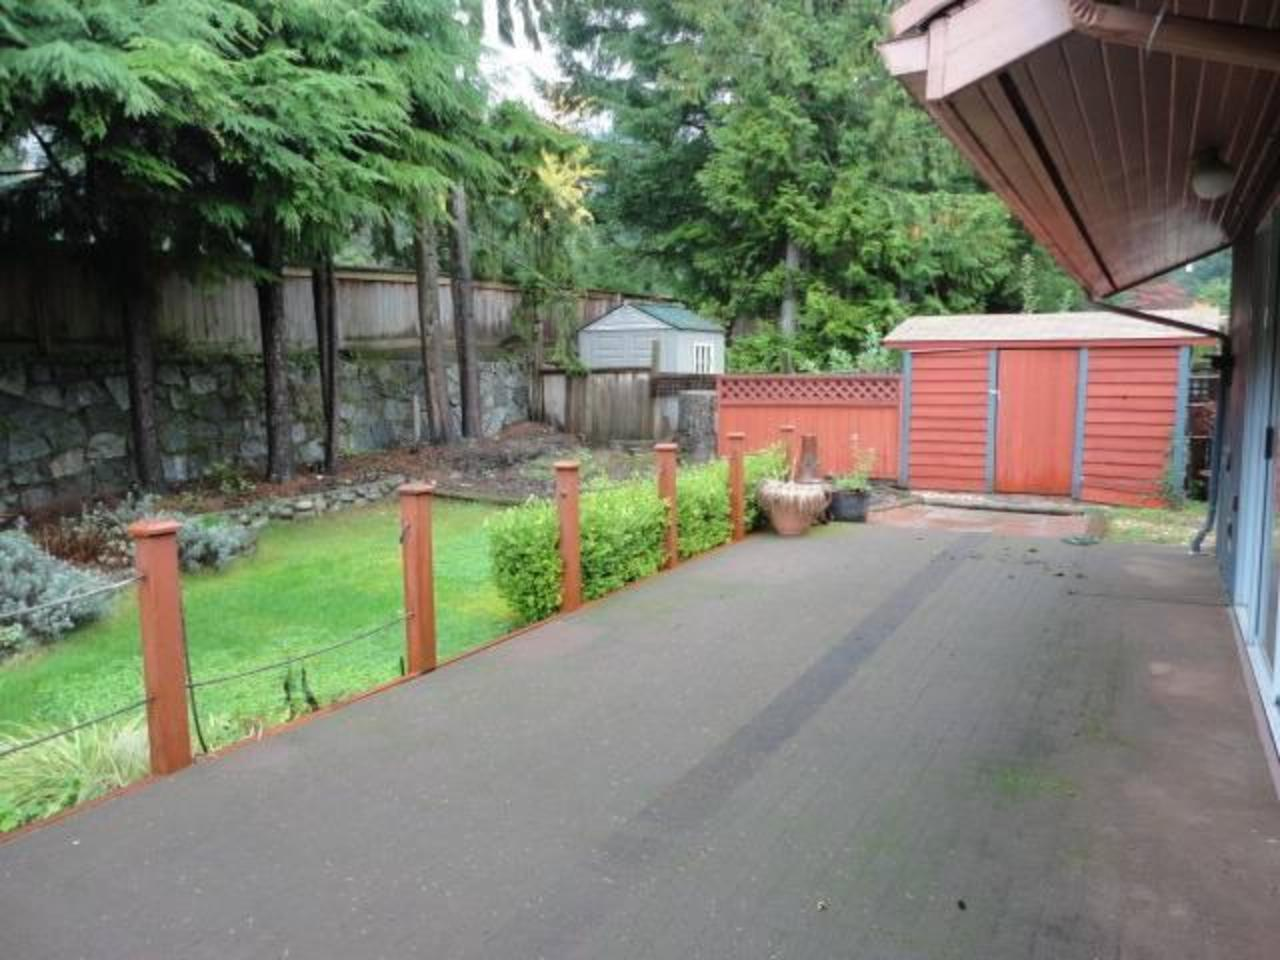 Yard at 24 Glenmore Drive, Glenmore, West Vancouver